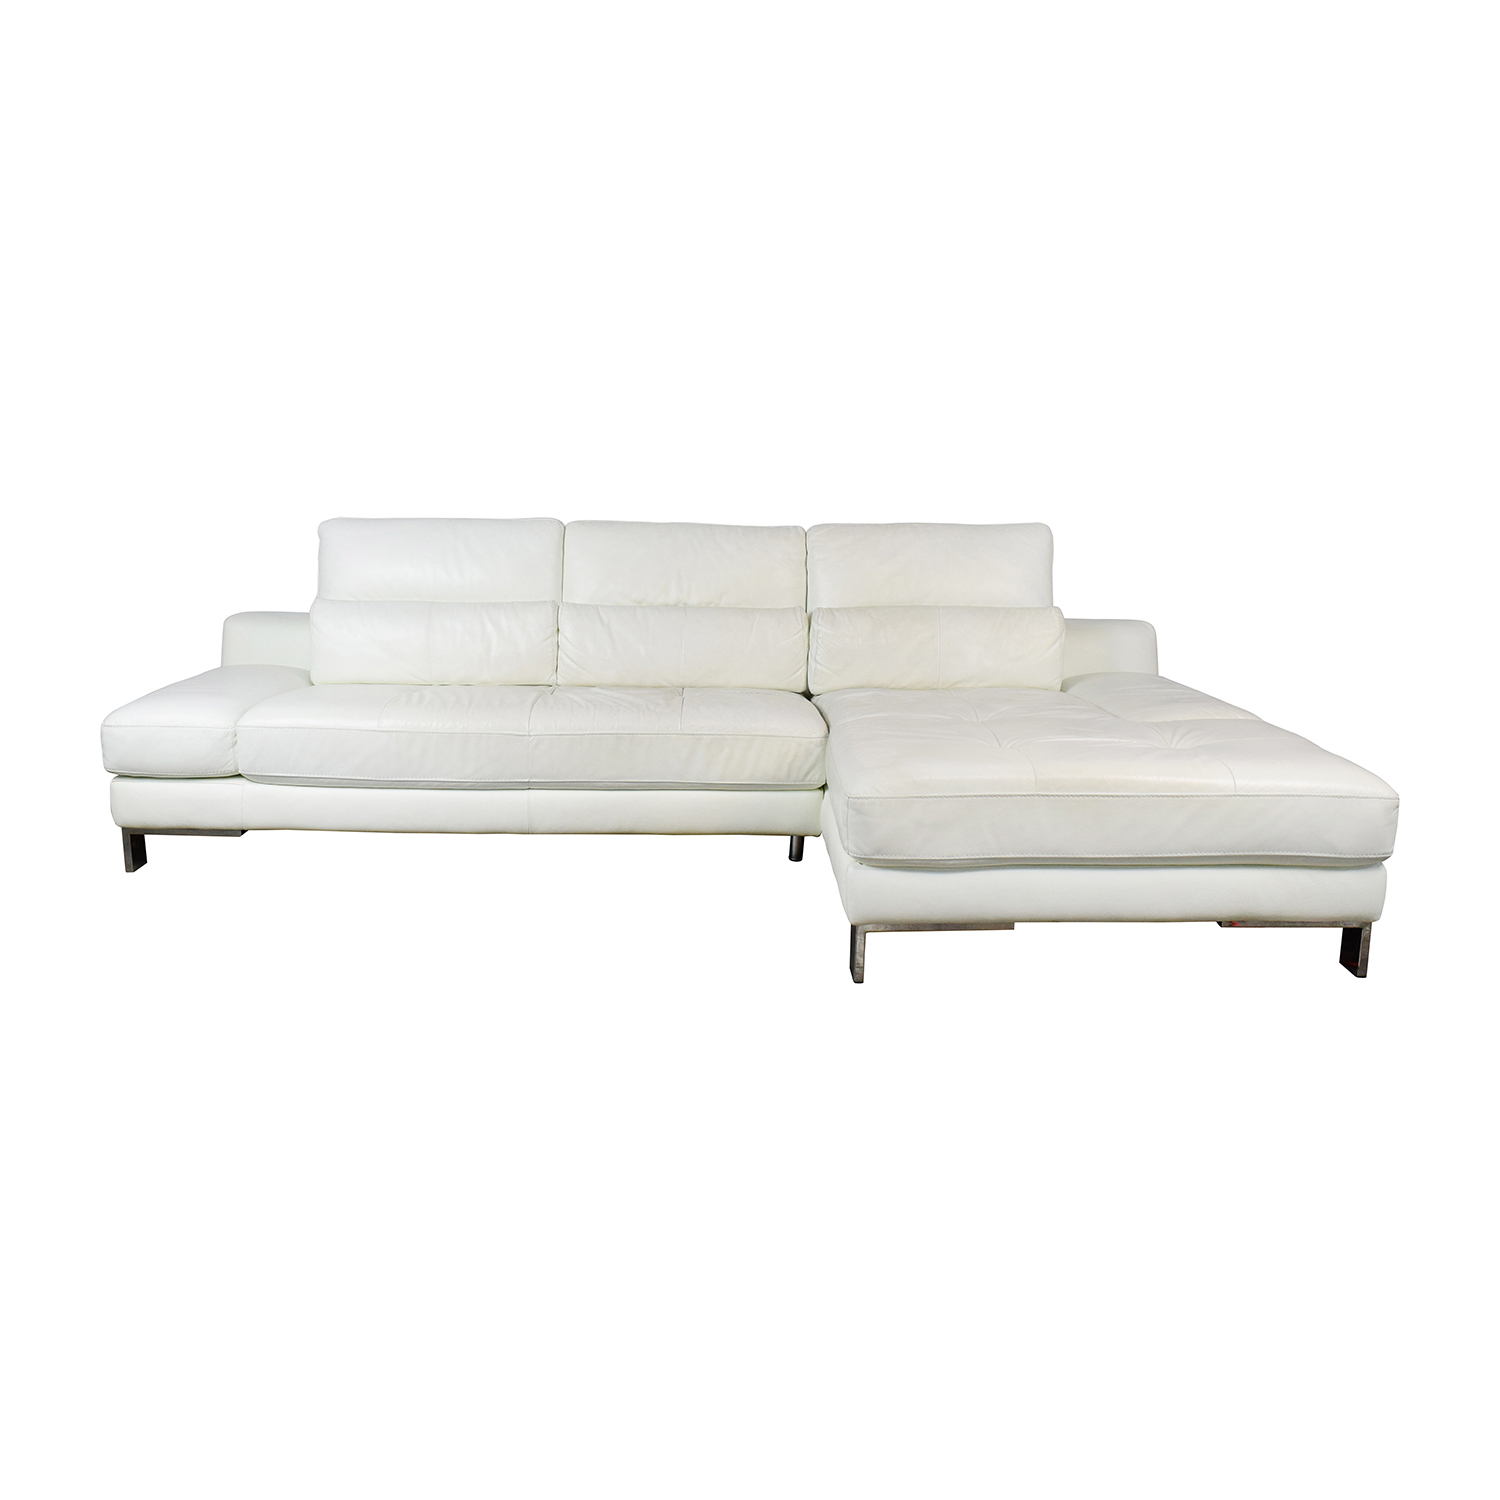 Sectional Sofa Connectors Canada: Mobilia Canada Mobilia Canada Funktion White